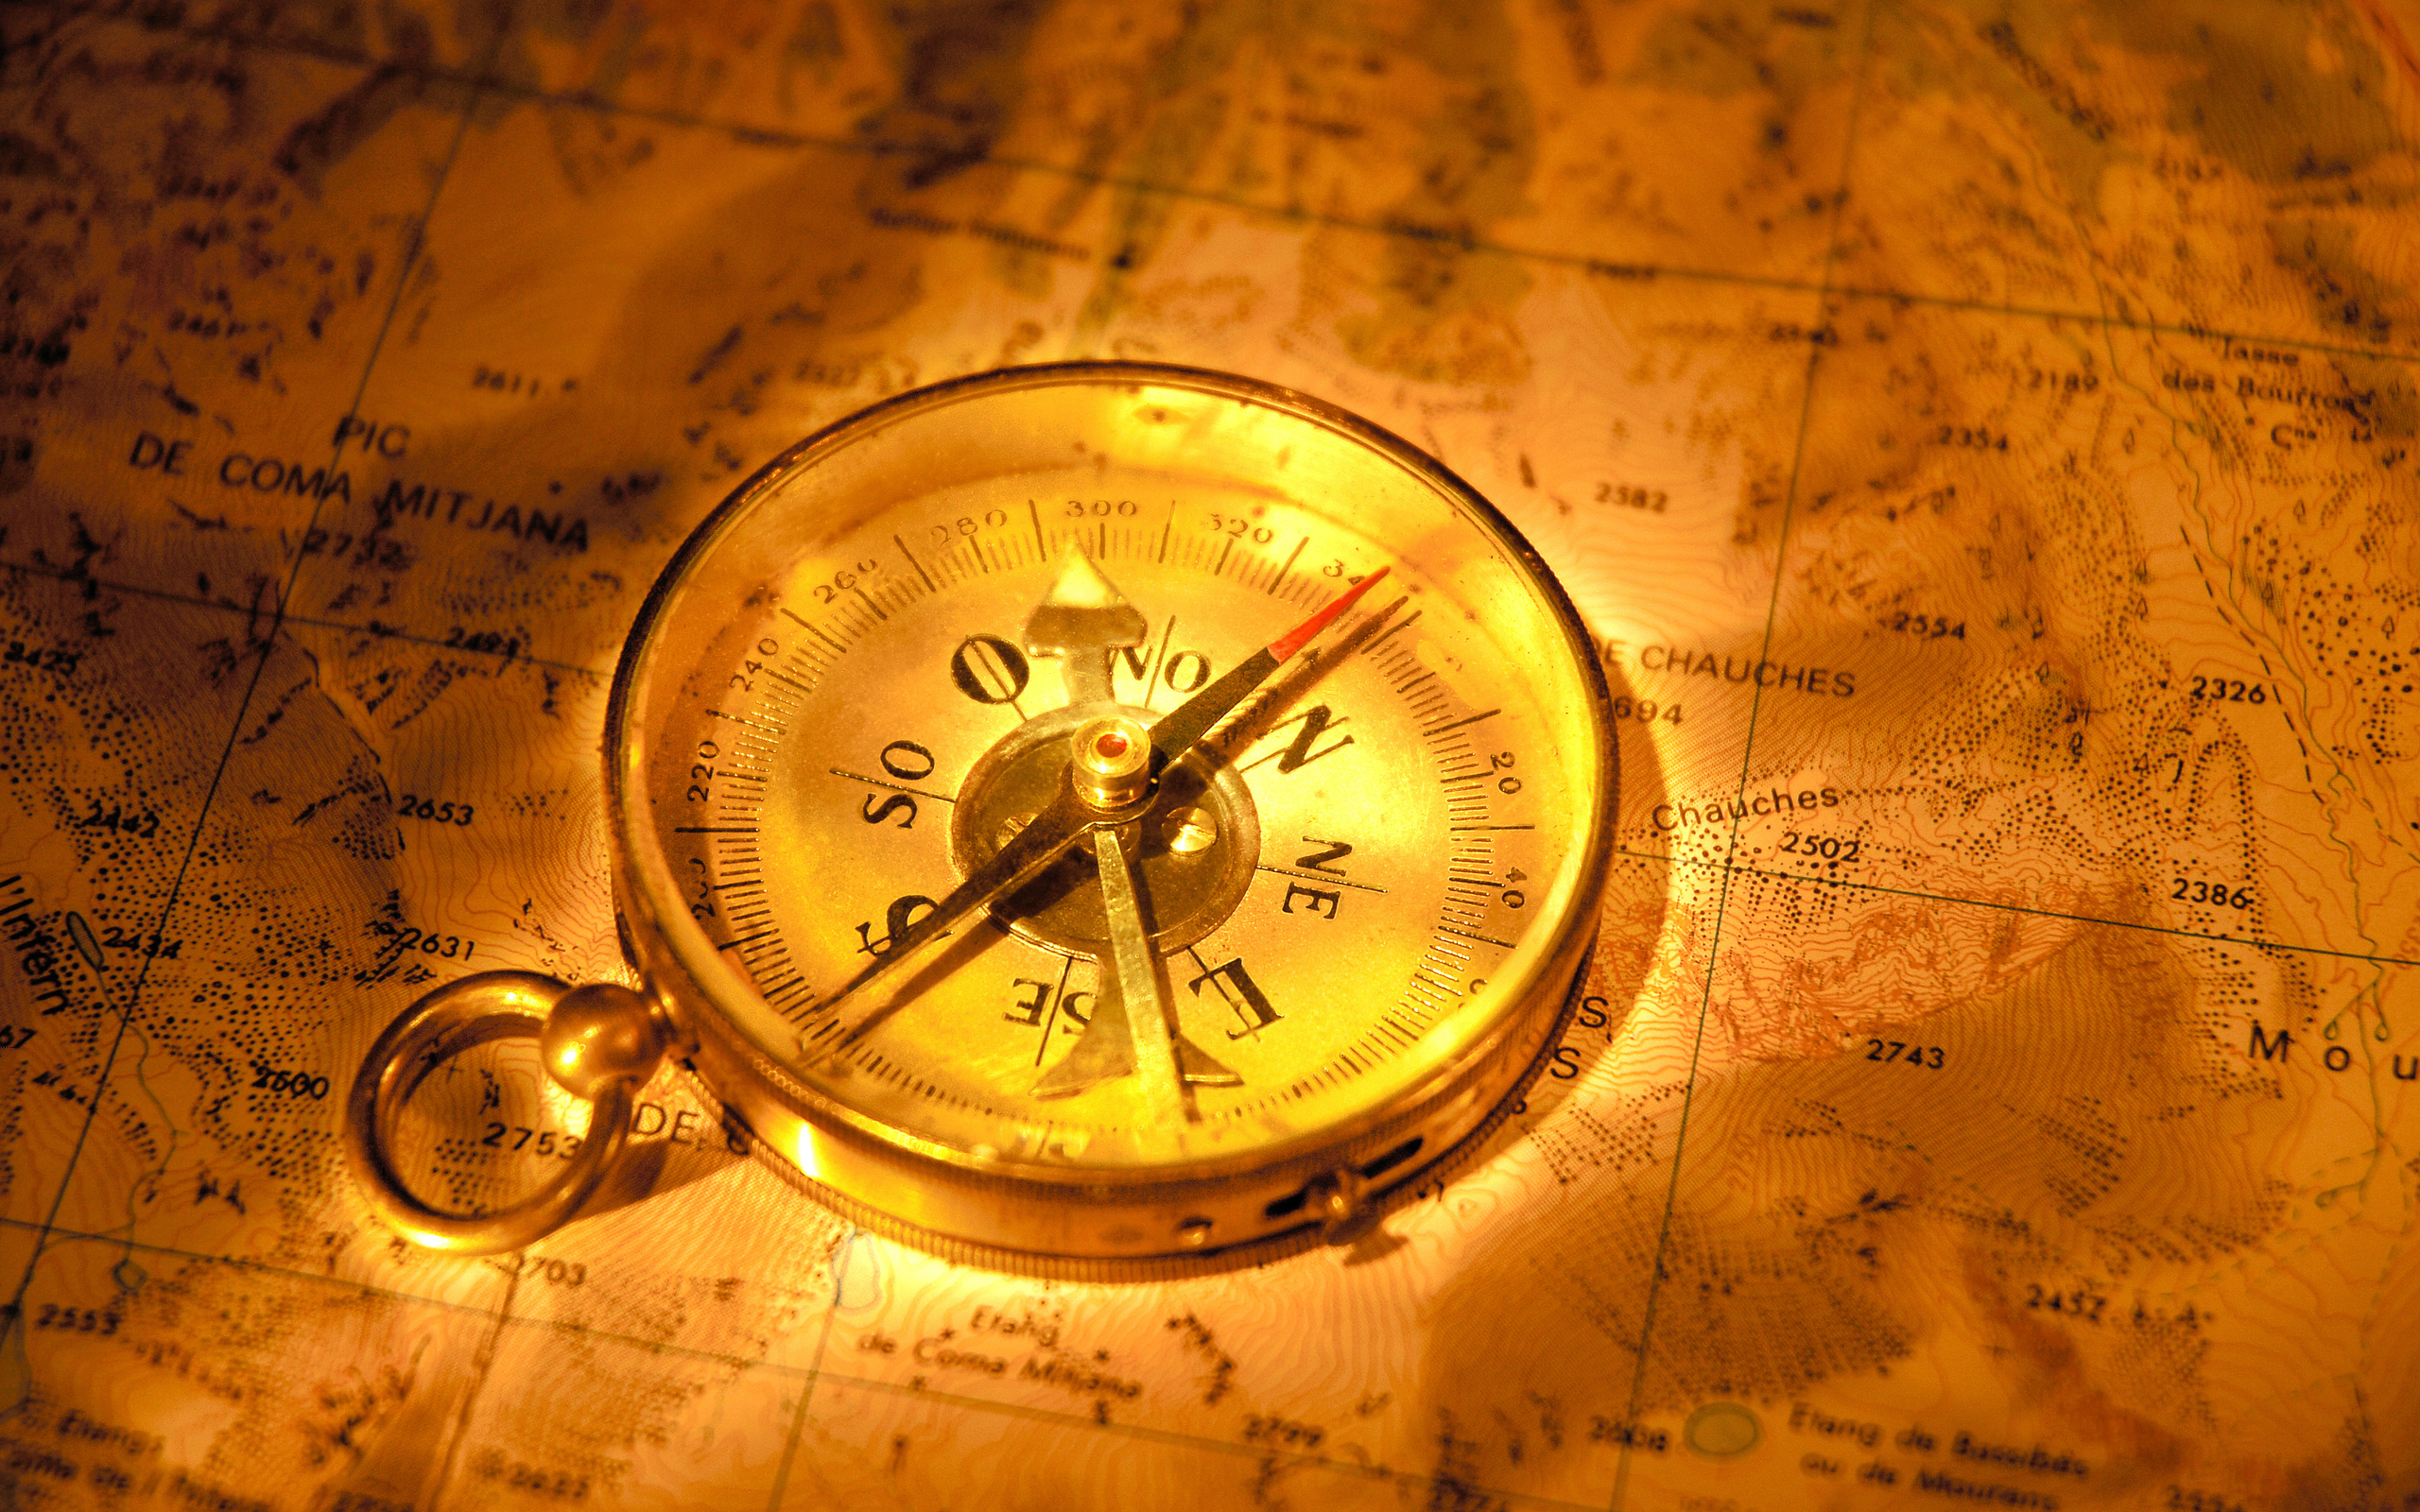 Vintage compass on the map navigator wallpapers and images 2560x1600